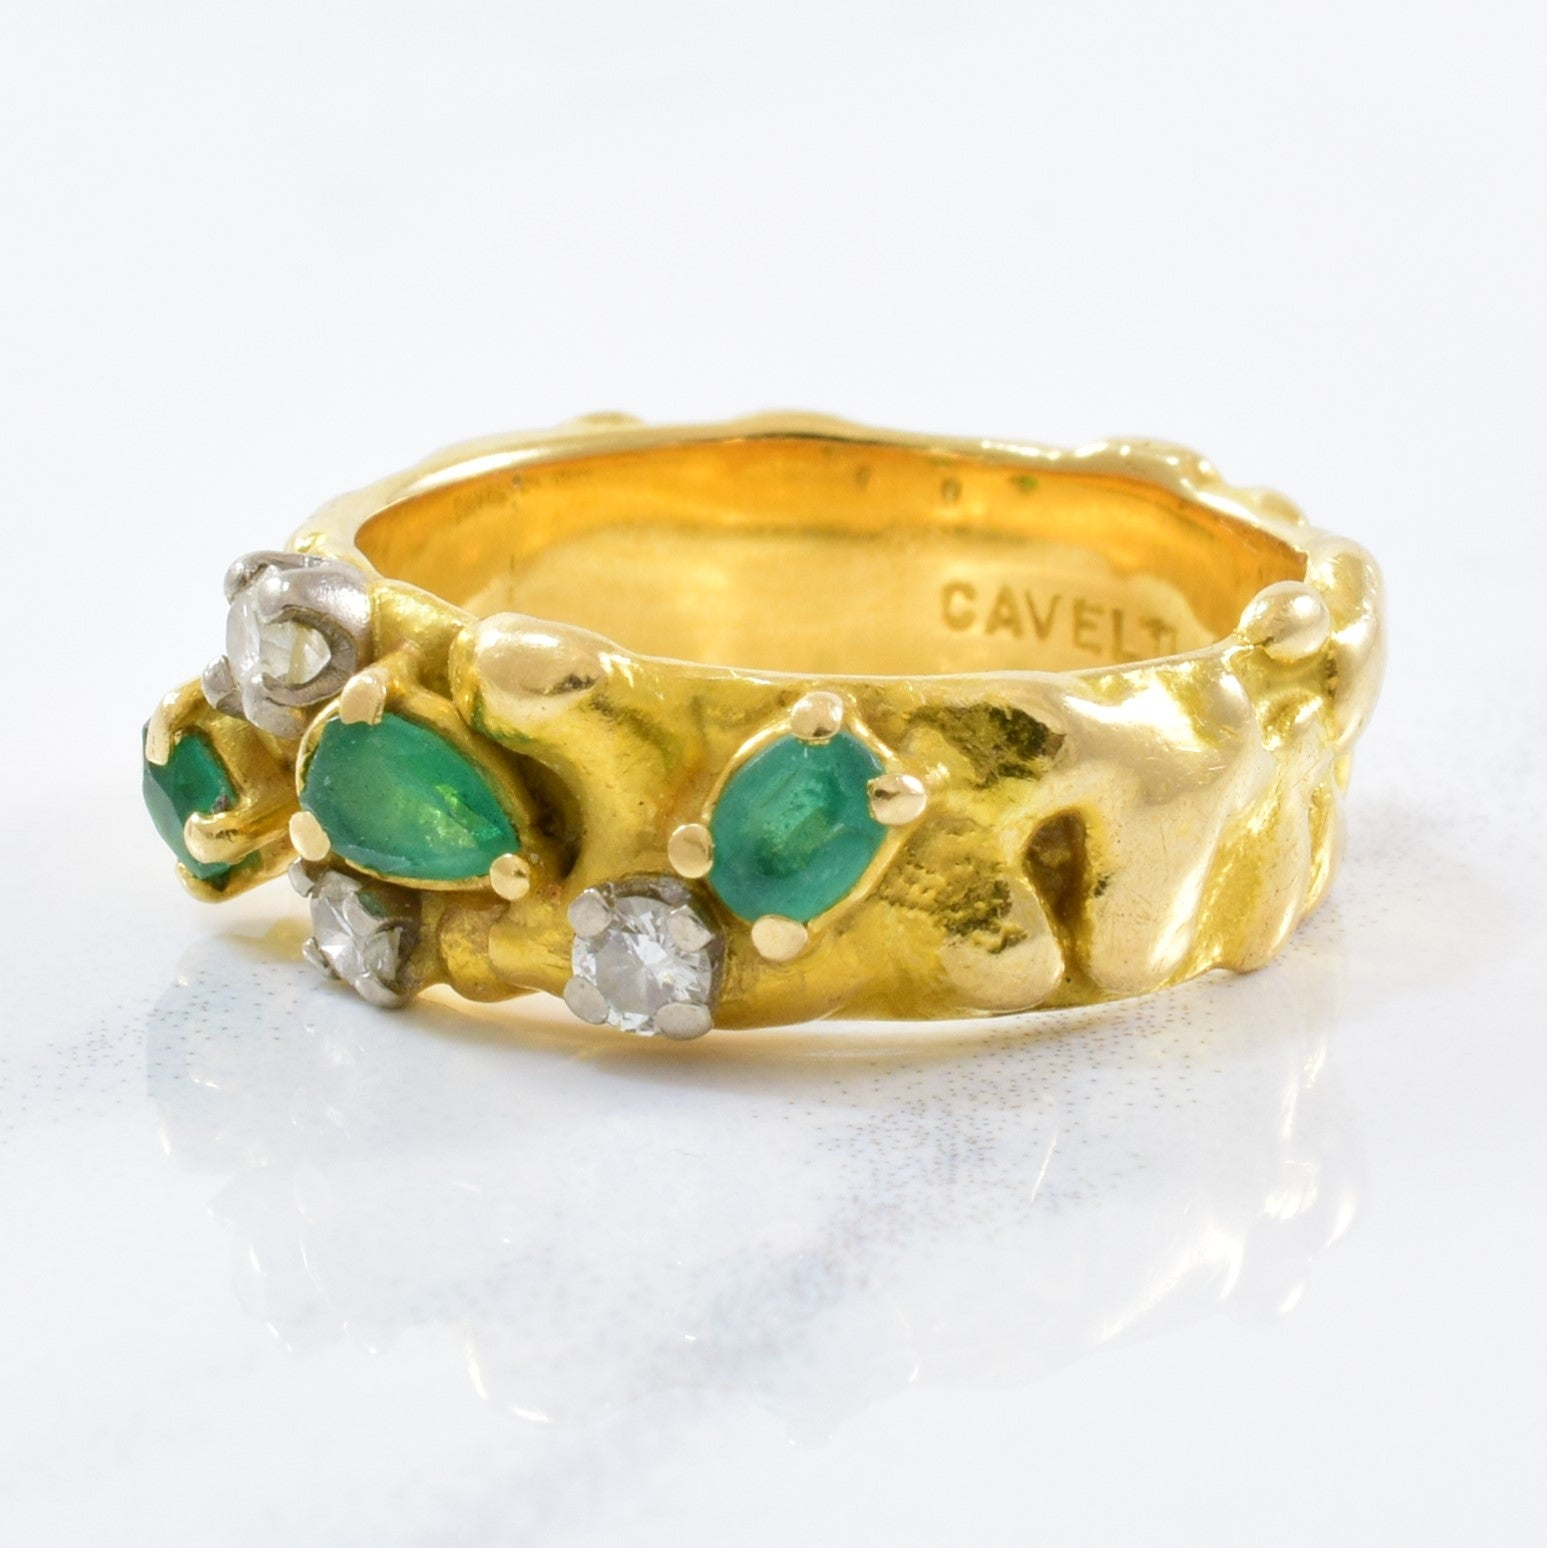 'Cavelti' Emerald & Diamond Band | 0.15ctw, 0.25ctw | SZ 5.25 |